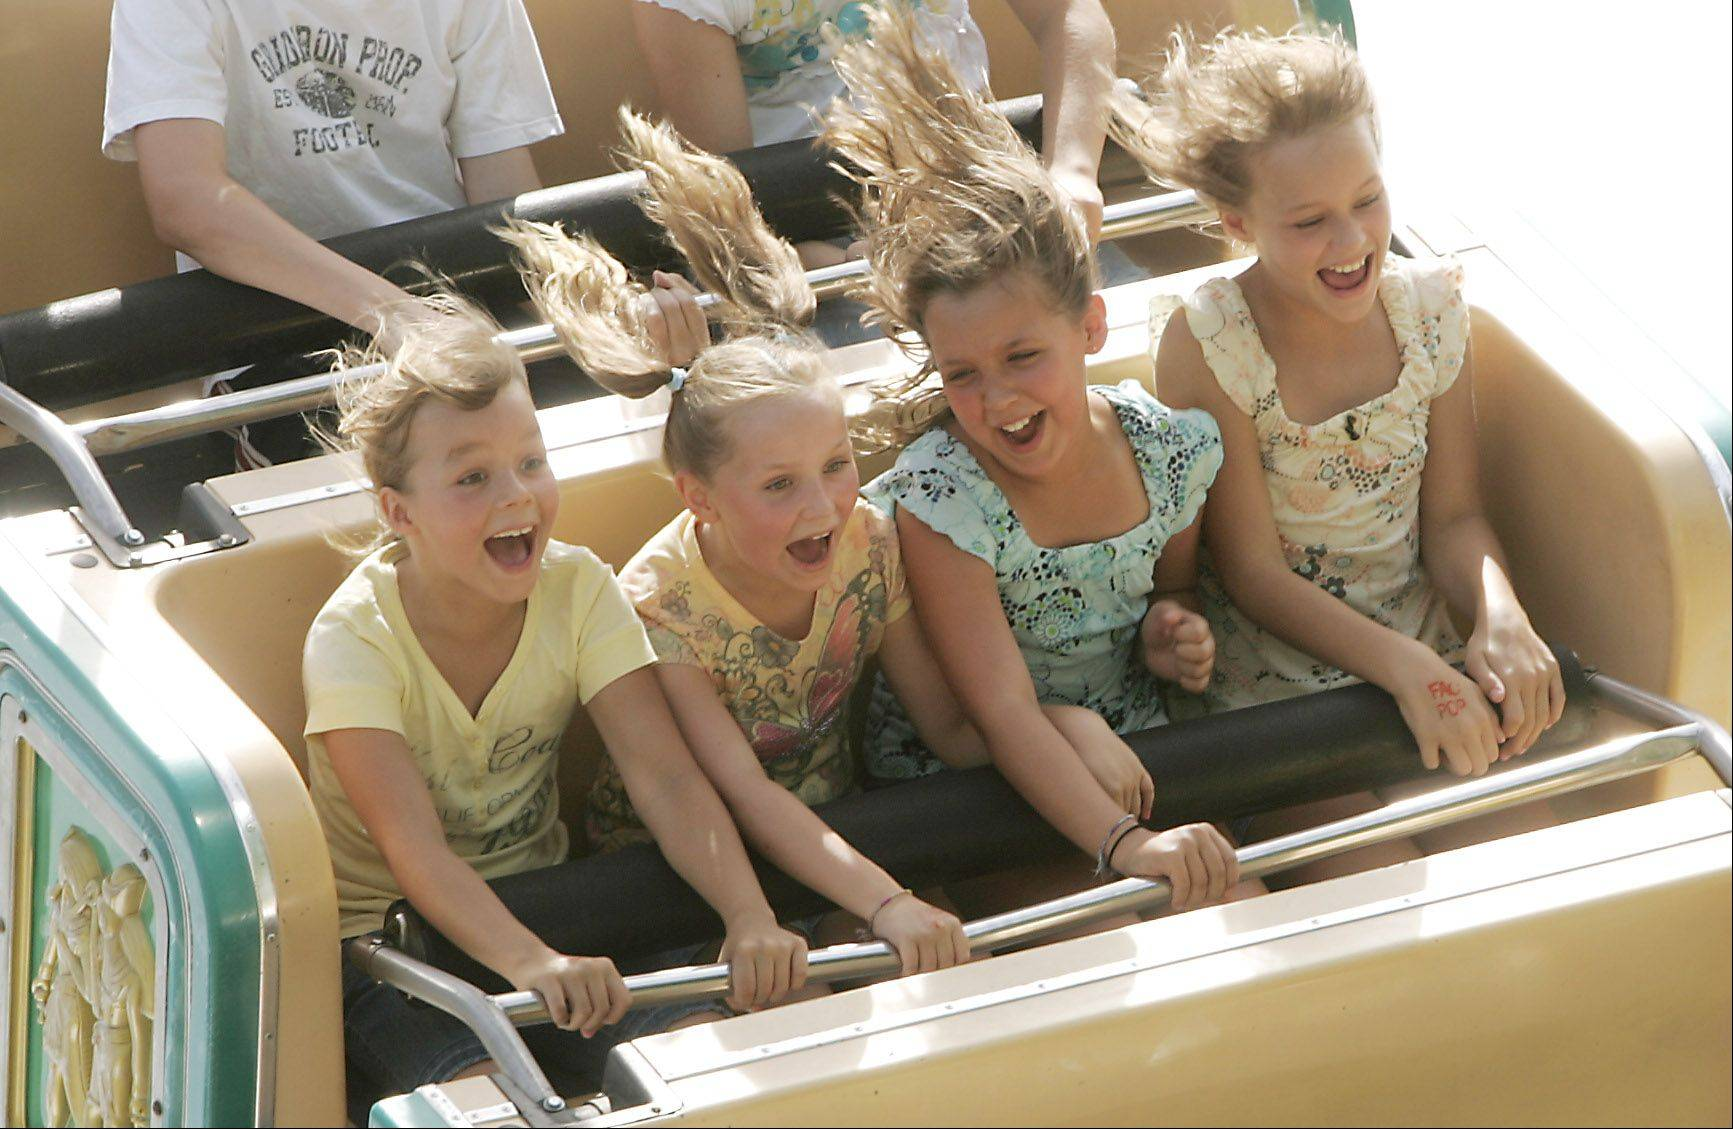 Festival lovers should prepare for a few thrills at Itasca Fest July 14-17. You'll find carnival rides, food and music, as well as a few surprises.